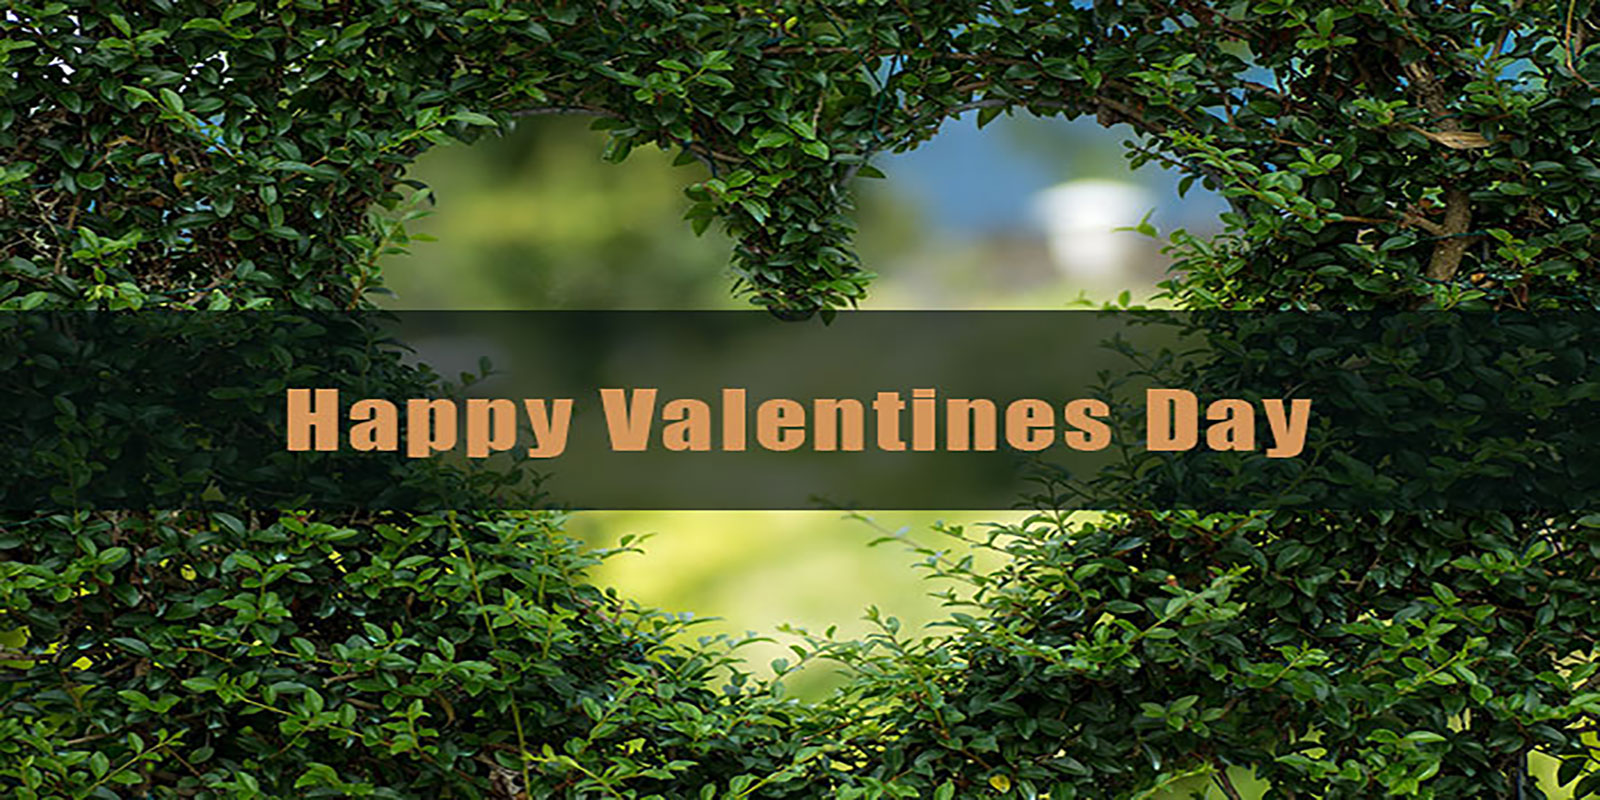 Happy Valentines Day 2019 Images, Messages, Quotes